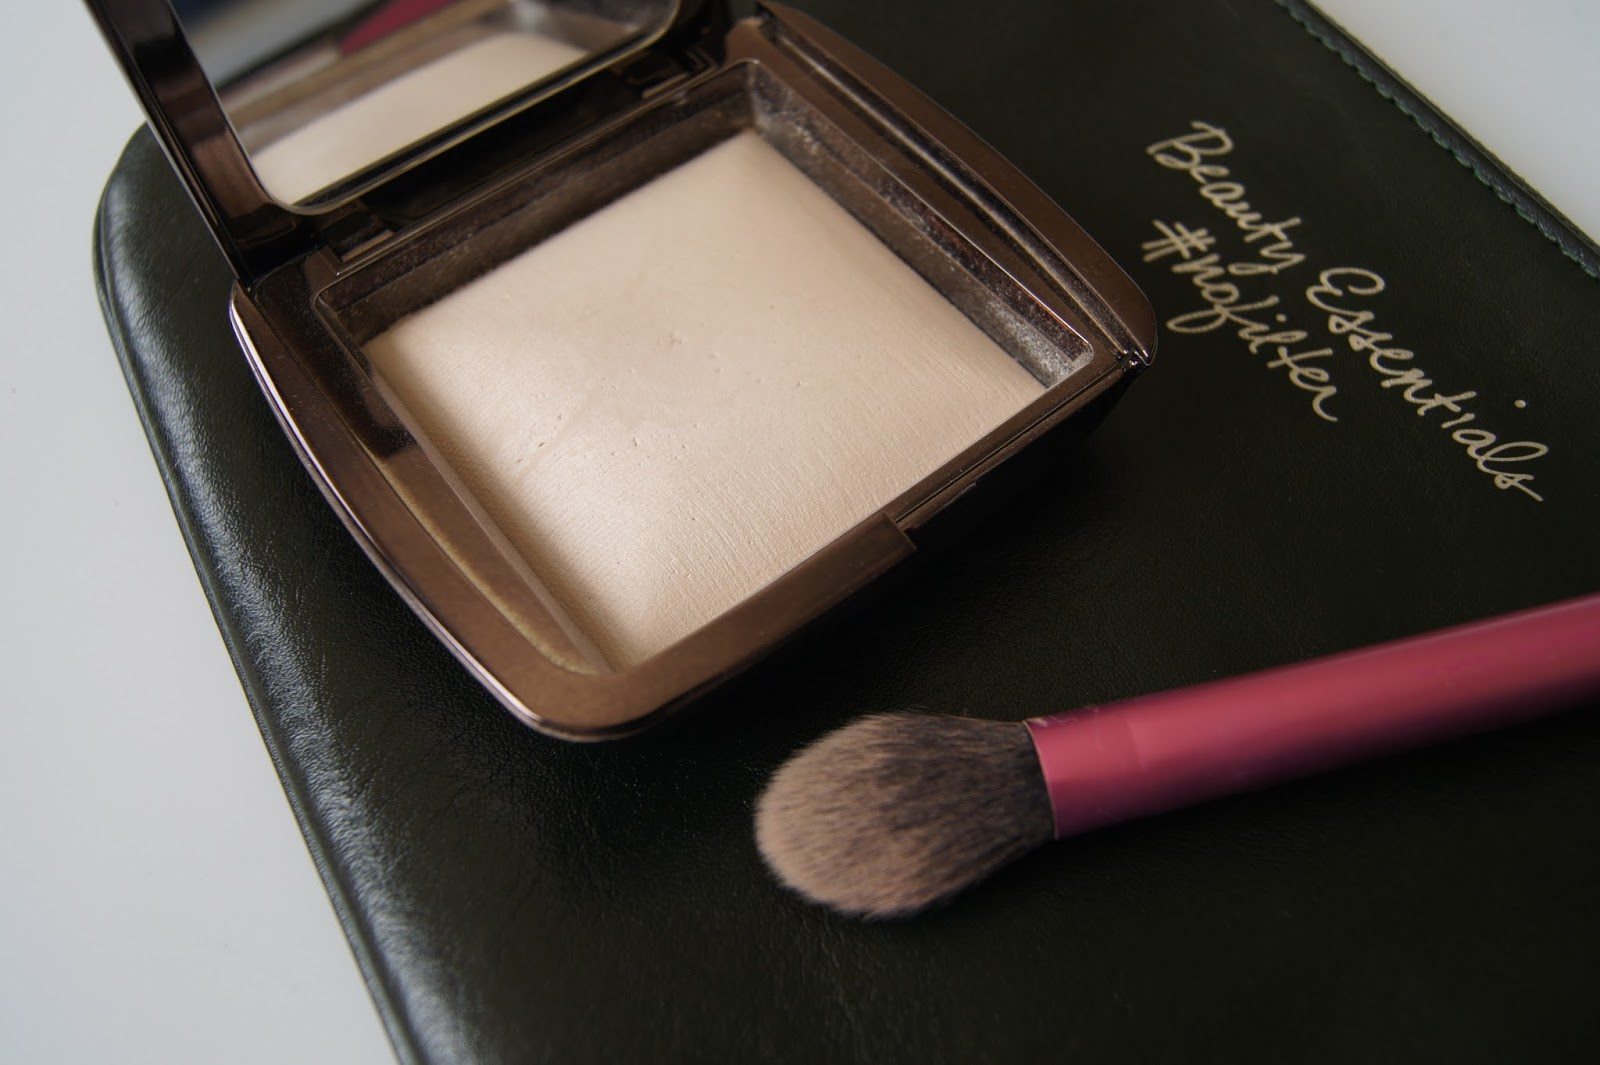 Hourglass ambient lighting powder in ethereal light review